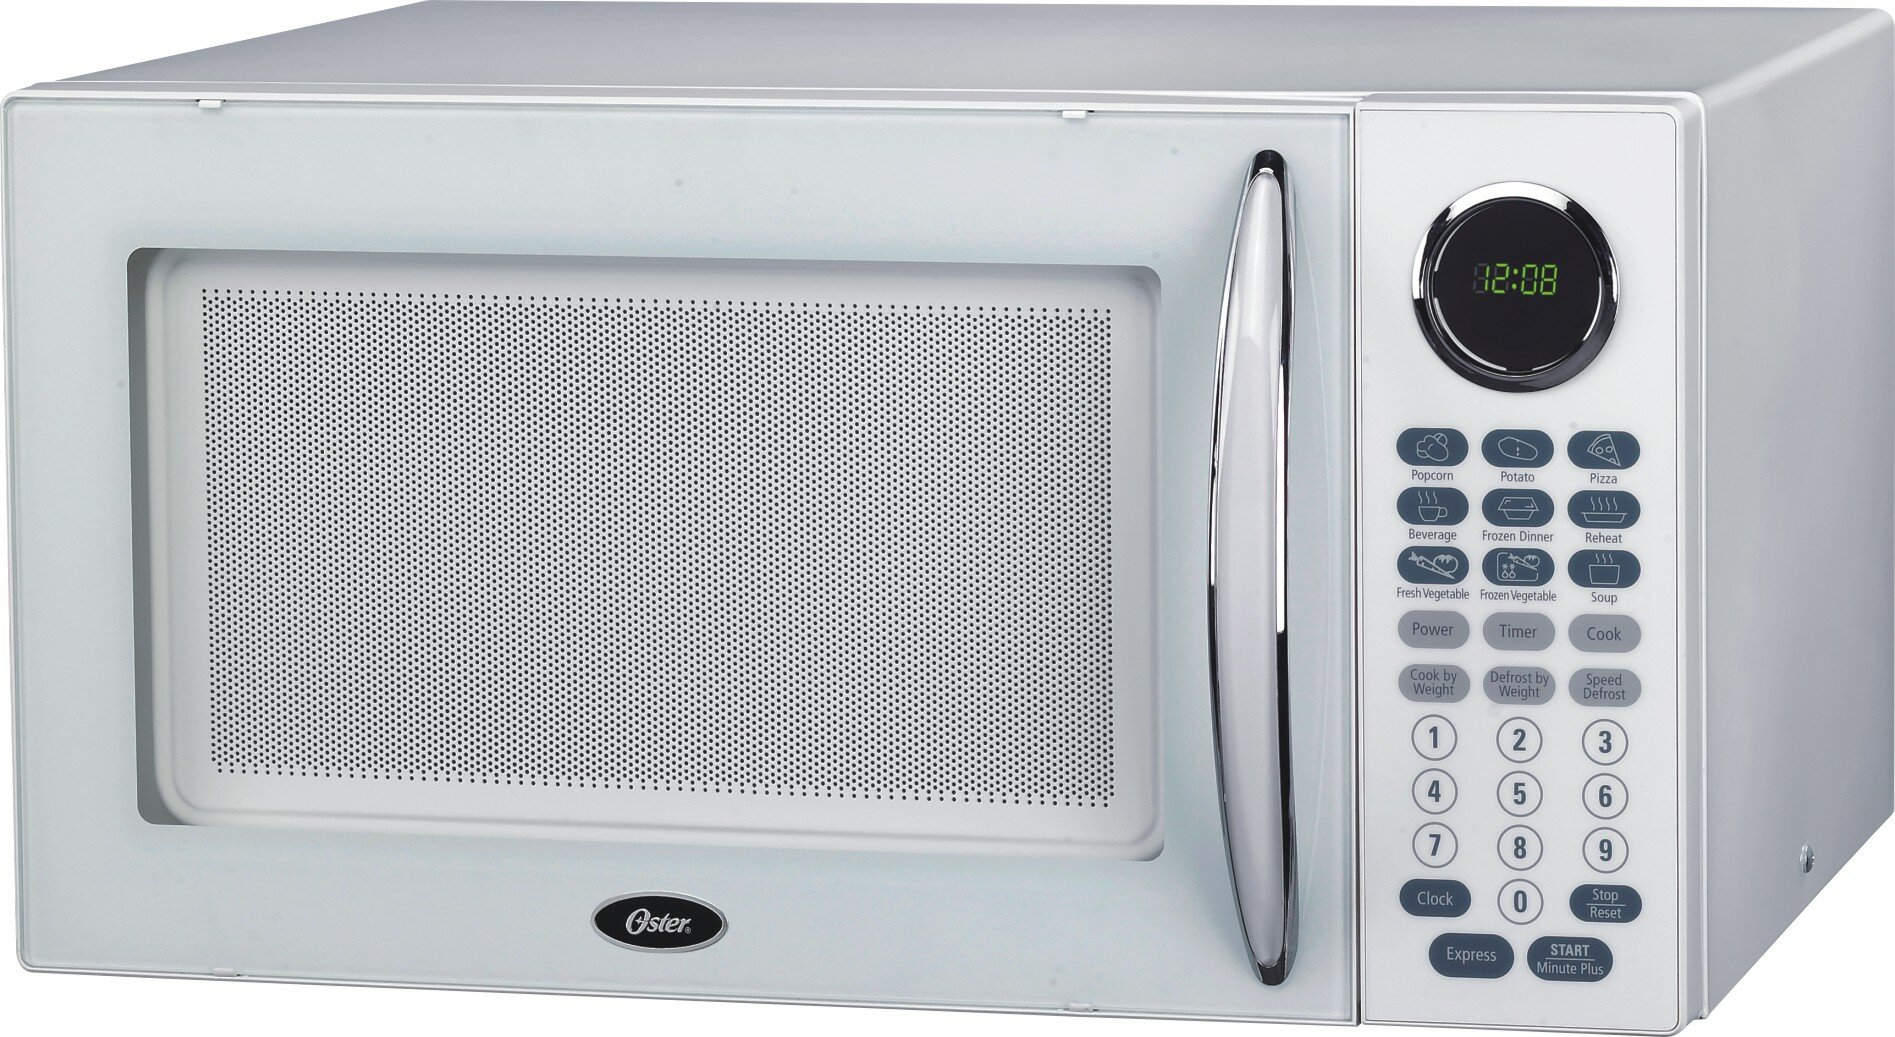 Oster 21 11 Cuft Countertop Microwave Reviews Wayfair